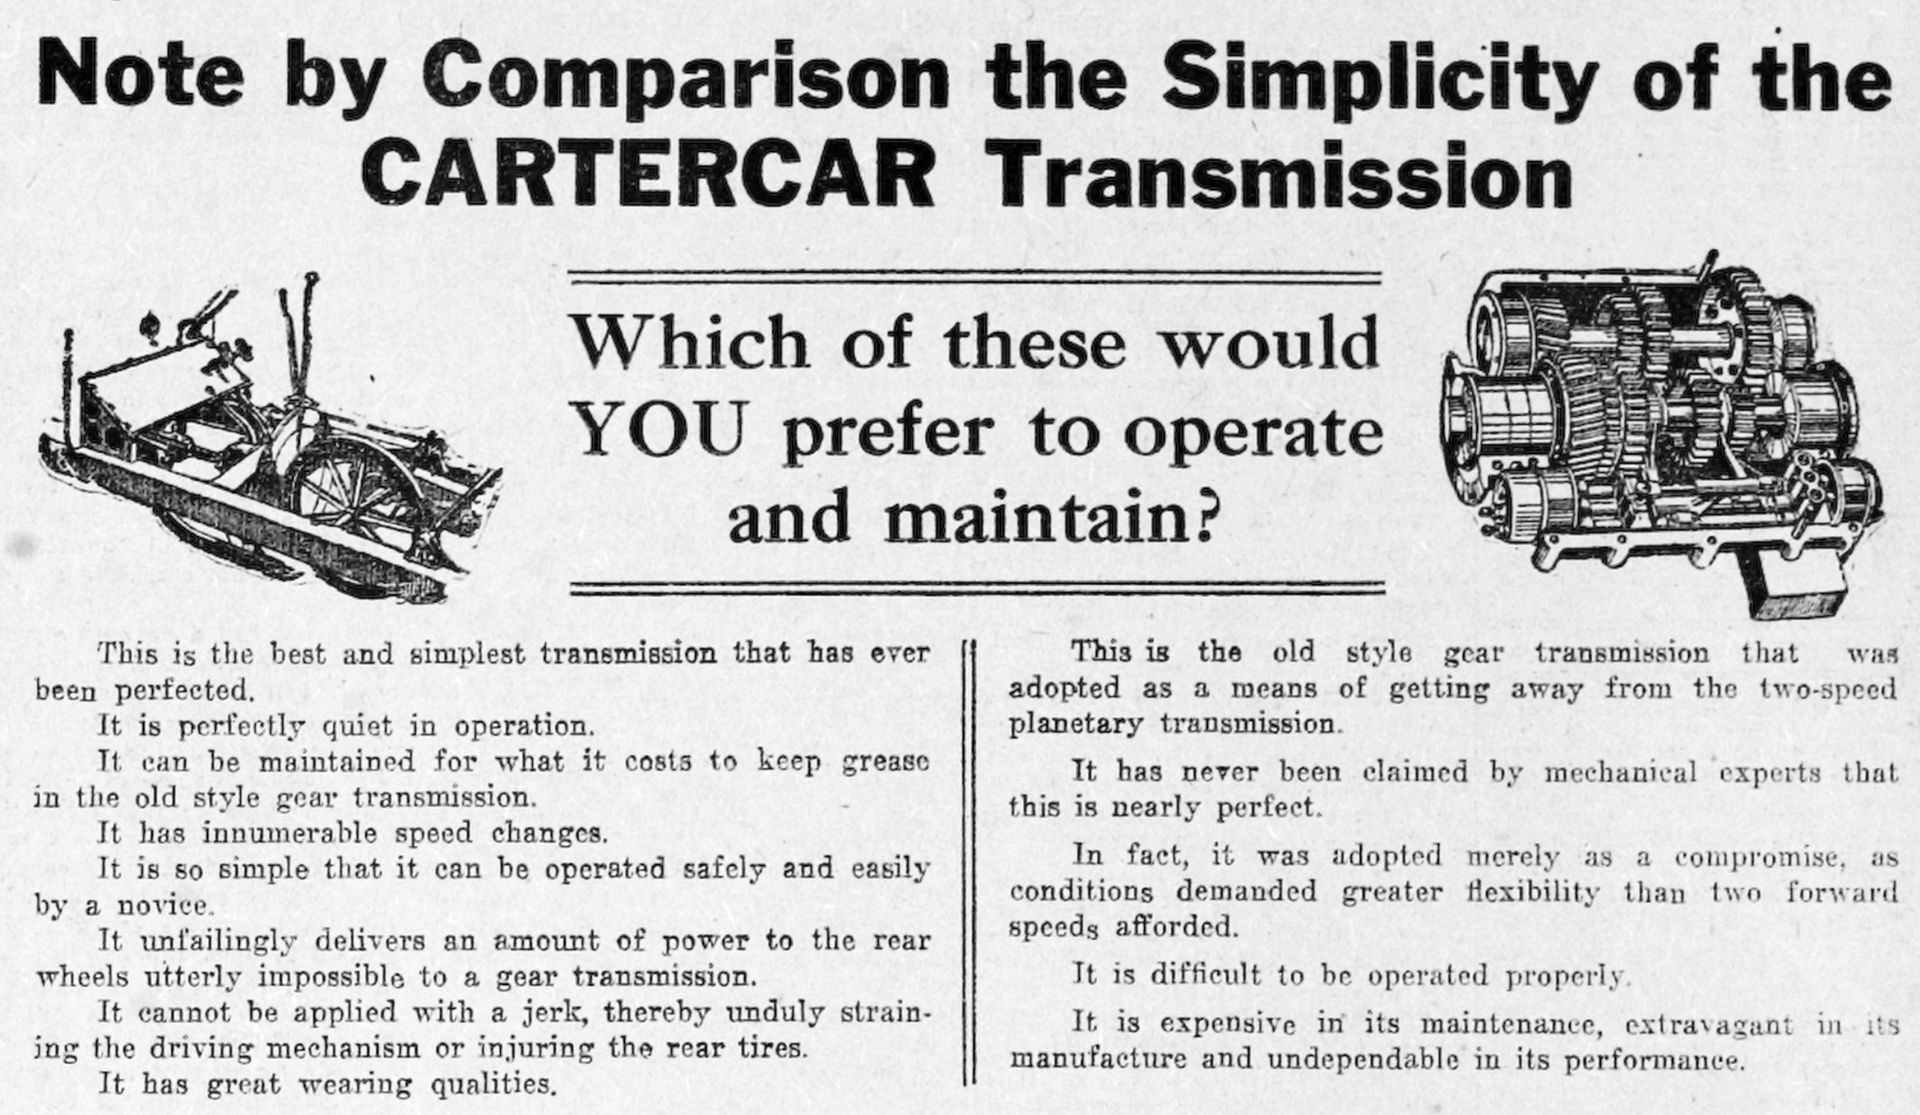 cartercar - the car ahead - read all about it